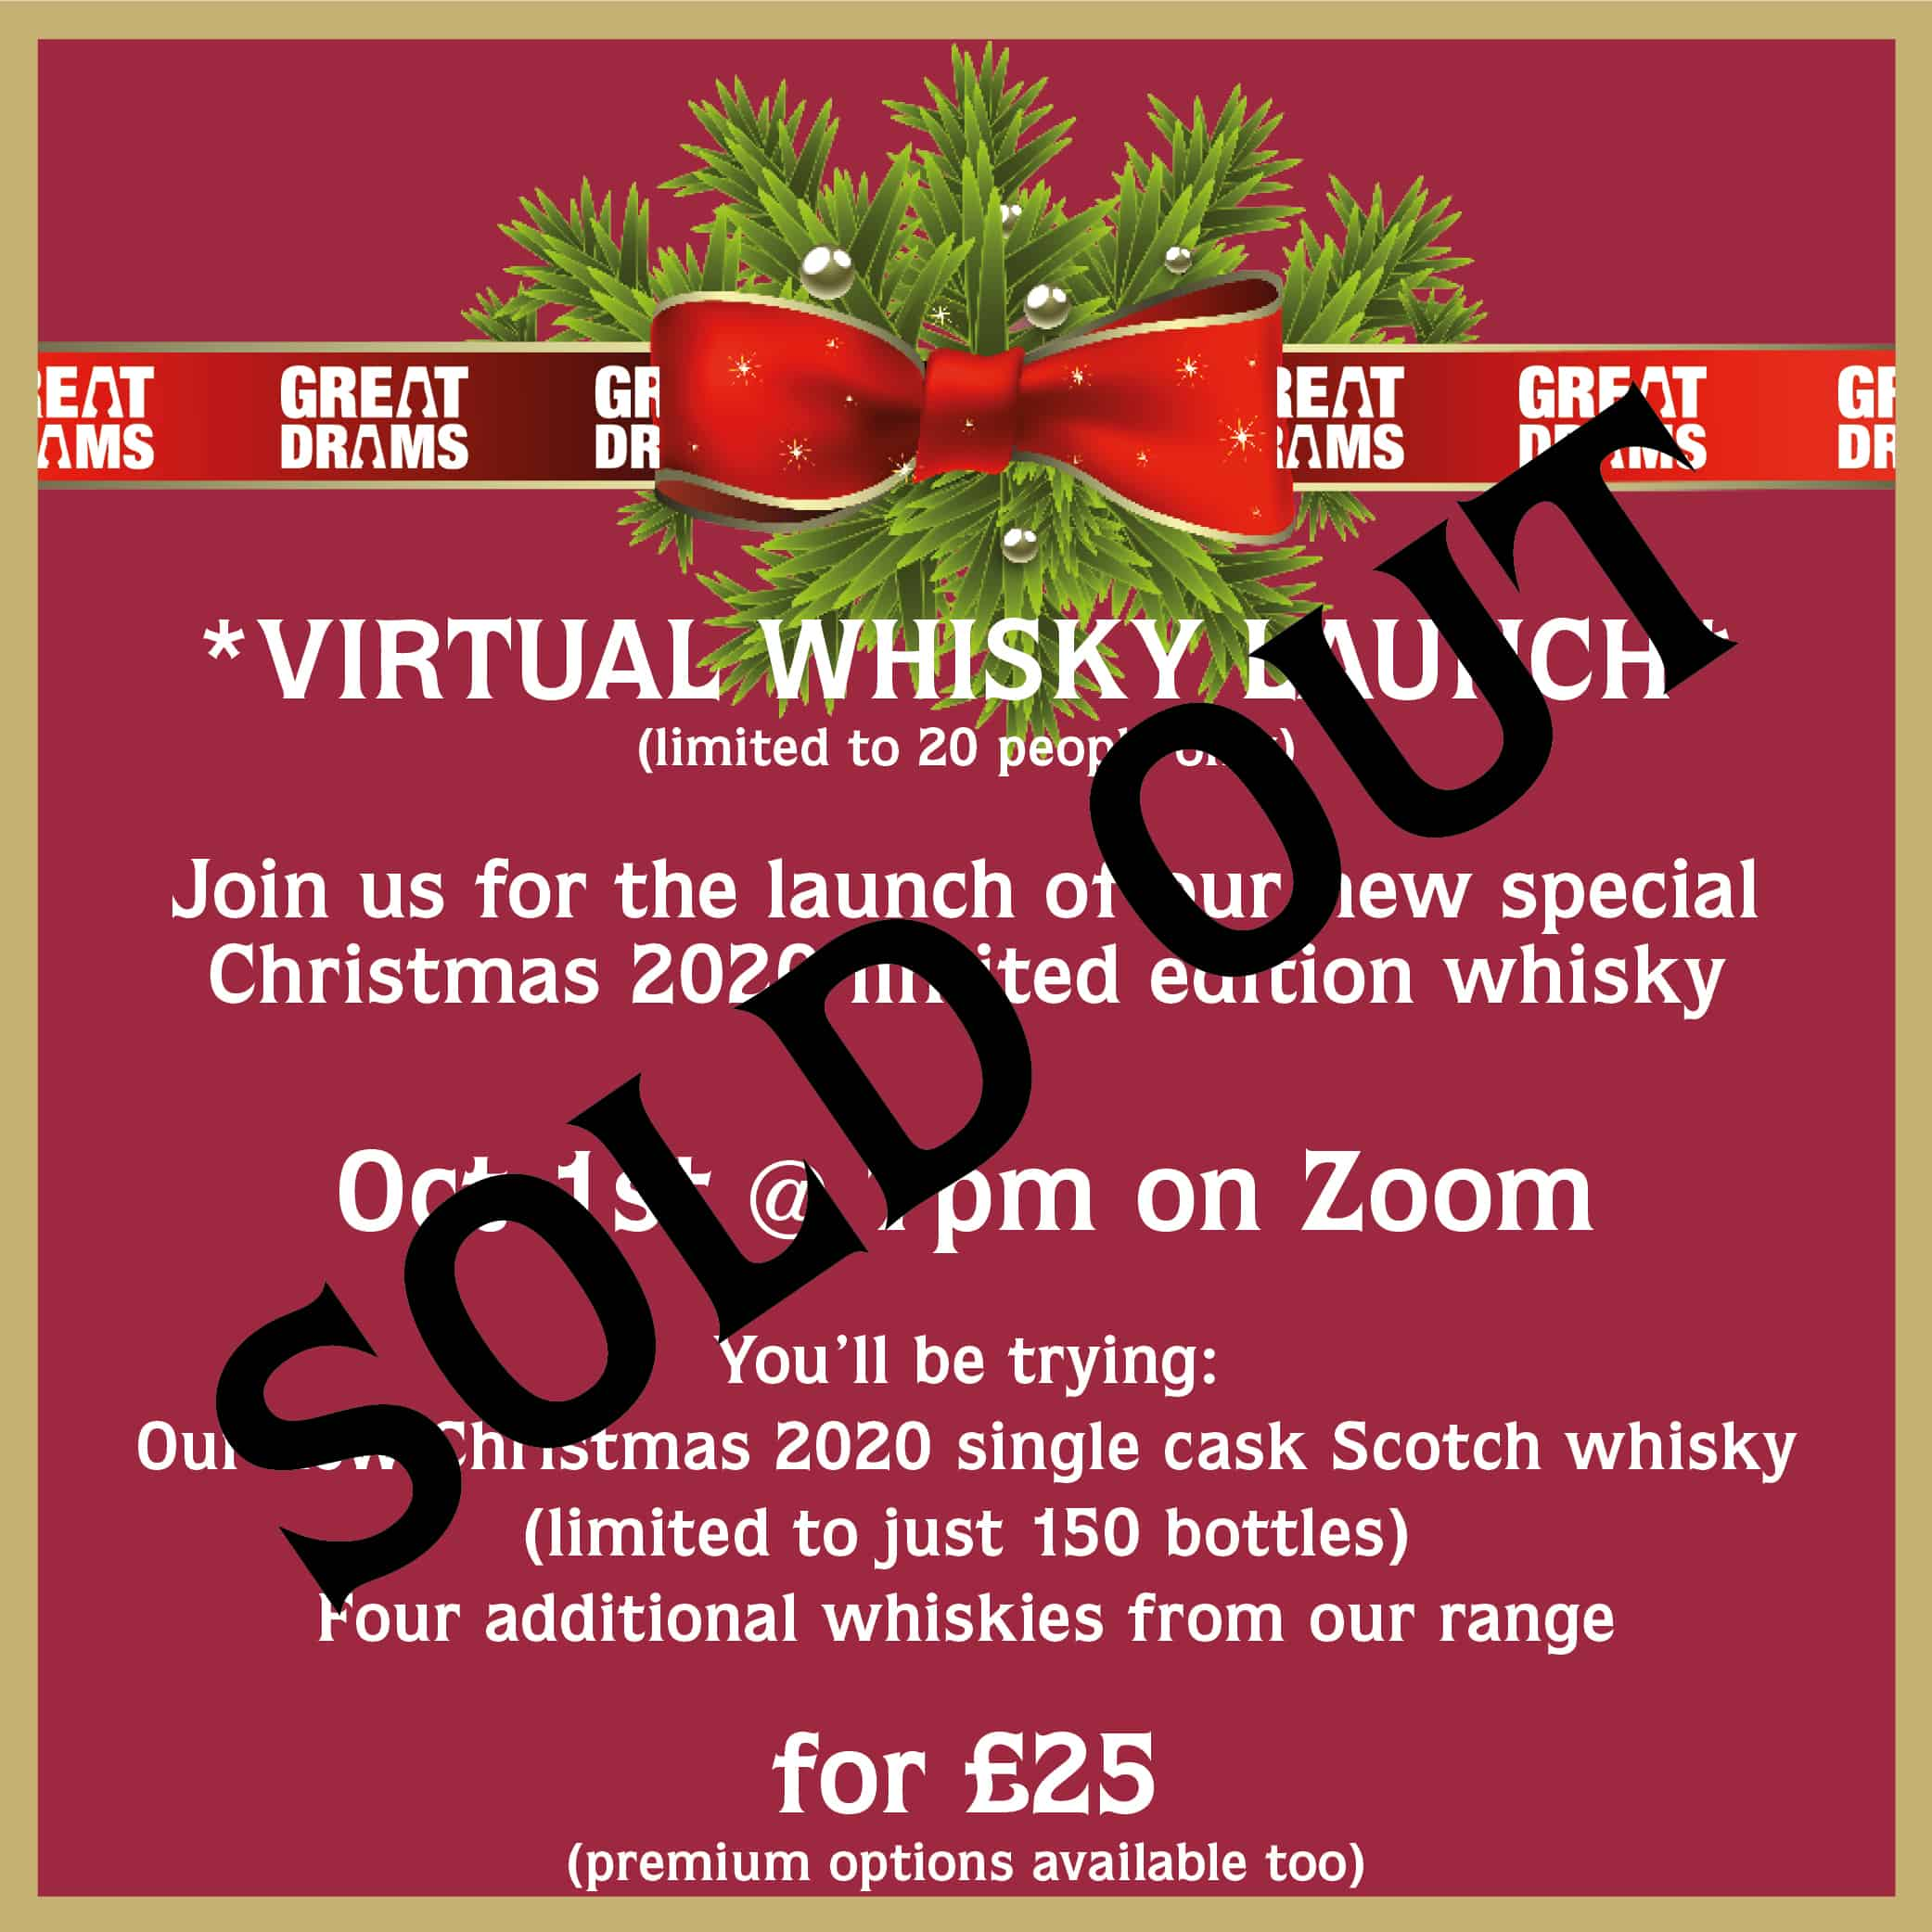 This Is Our Christmas 2020 GreatDrams *VIRTUAL WHISKY LAUNCH* for our Christmas 2020 Limited